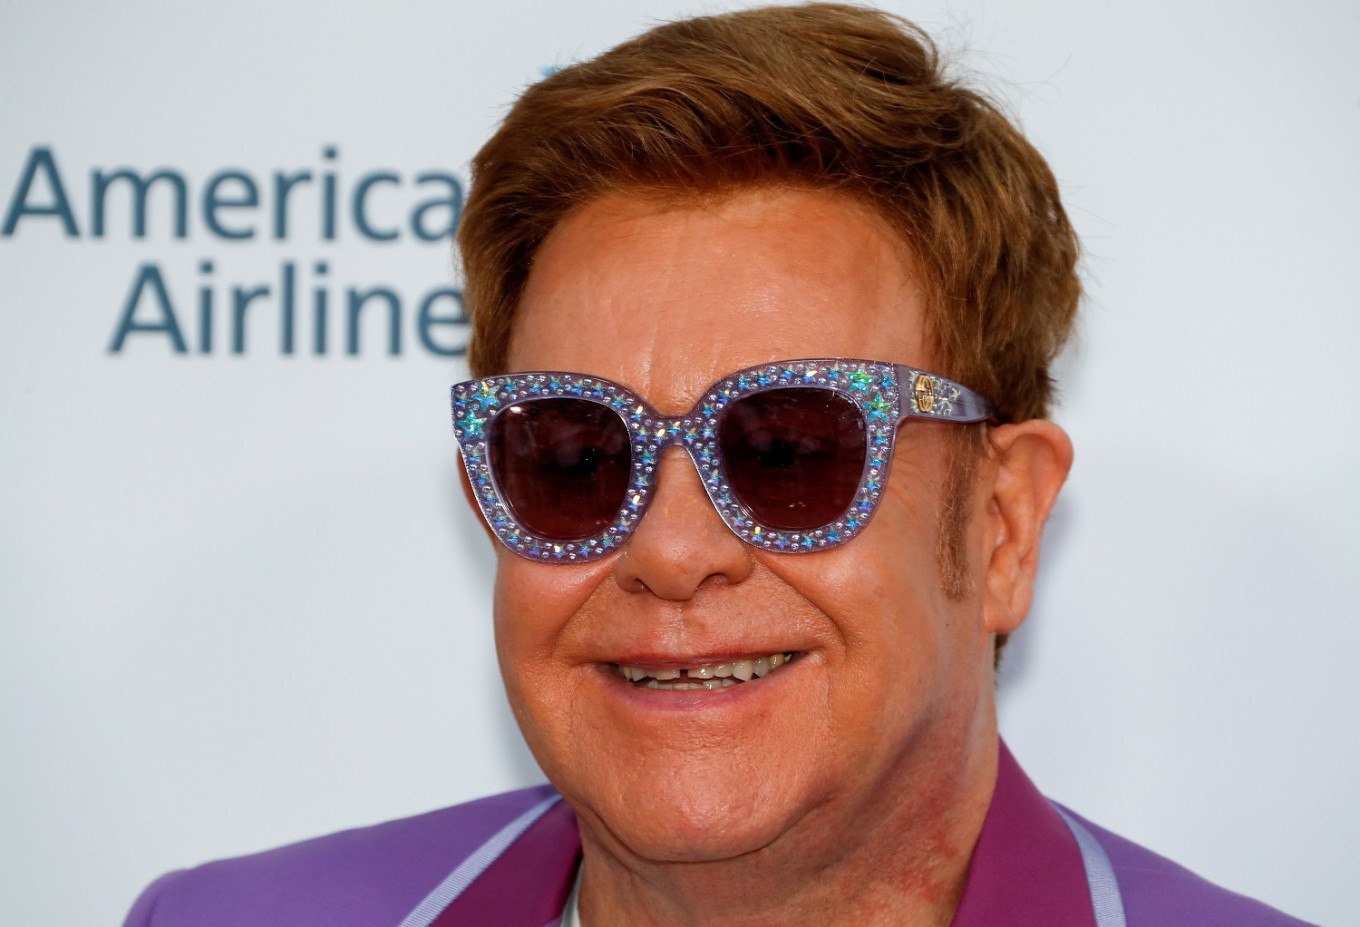 Elton John's coronavirus 'living room' show raises $8 million for US charities